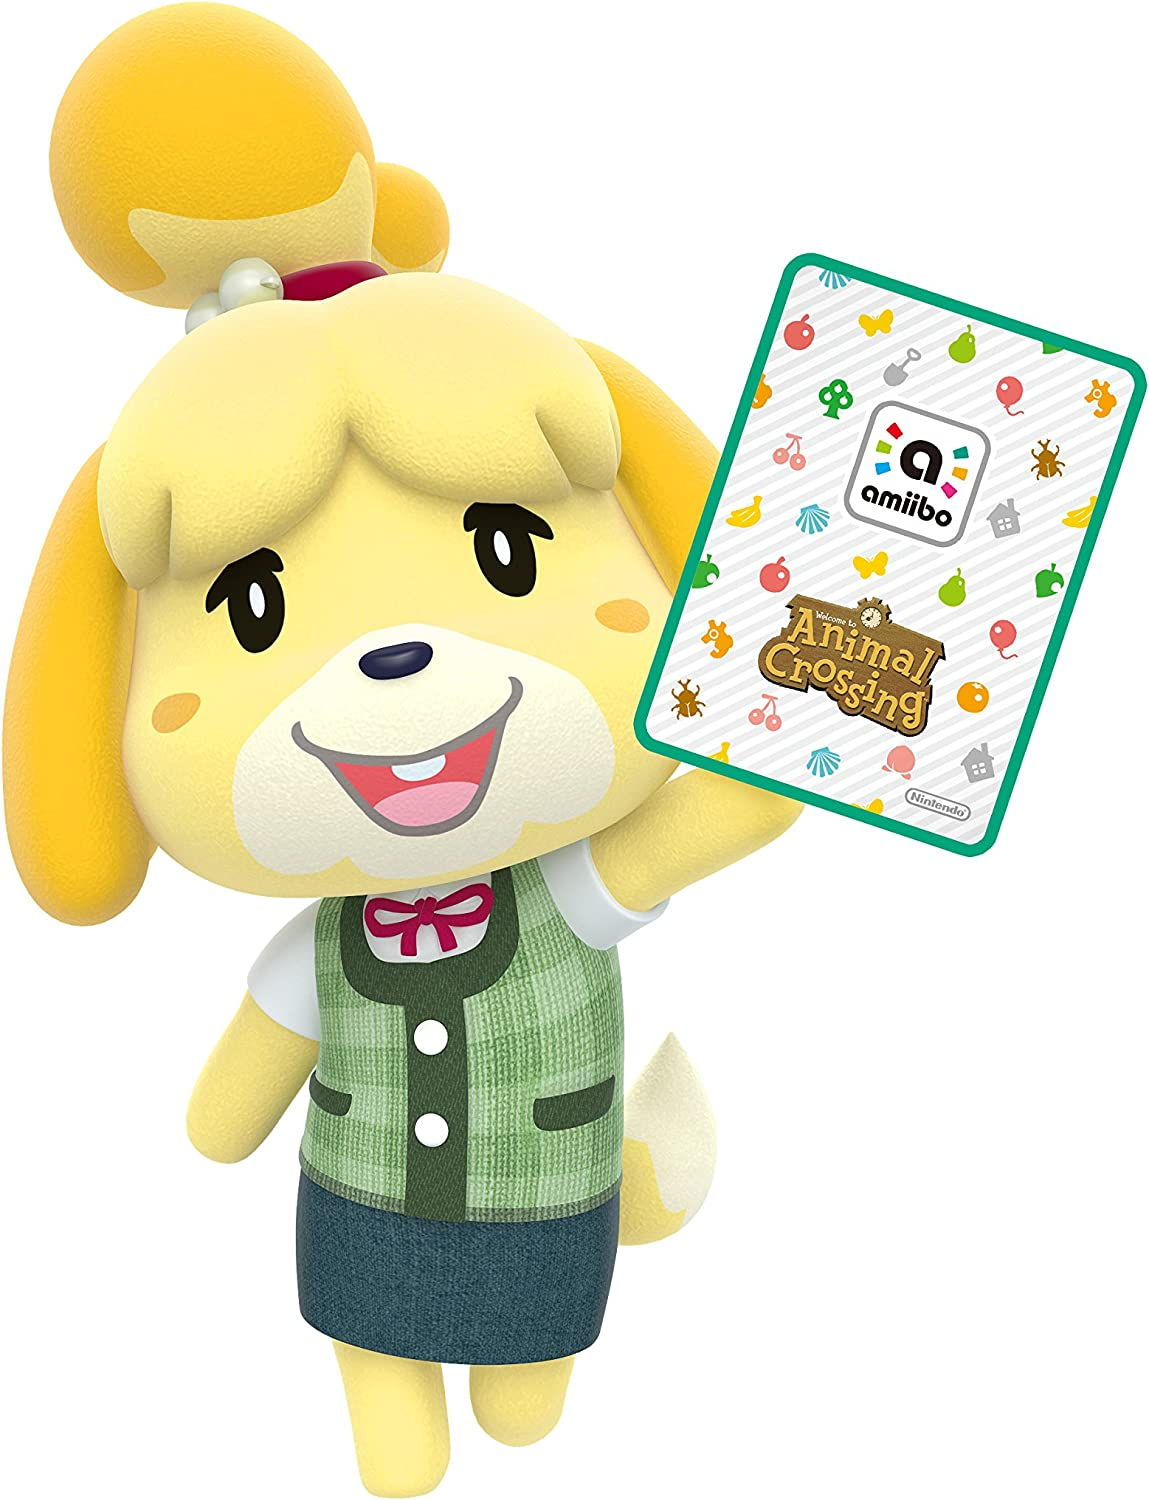 Amazoncom Animal Crossing Series 1 Single Pack Of 6 Cards